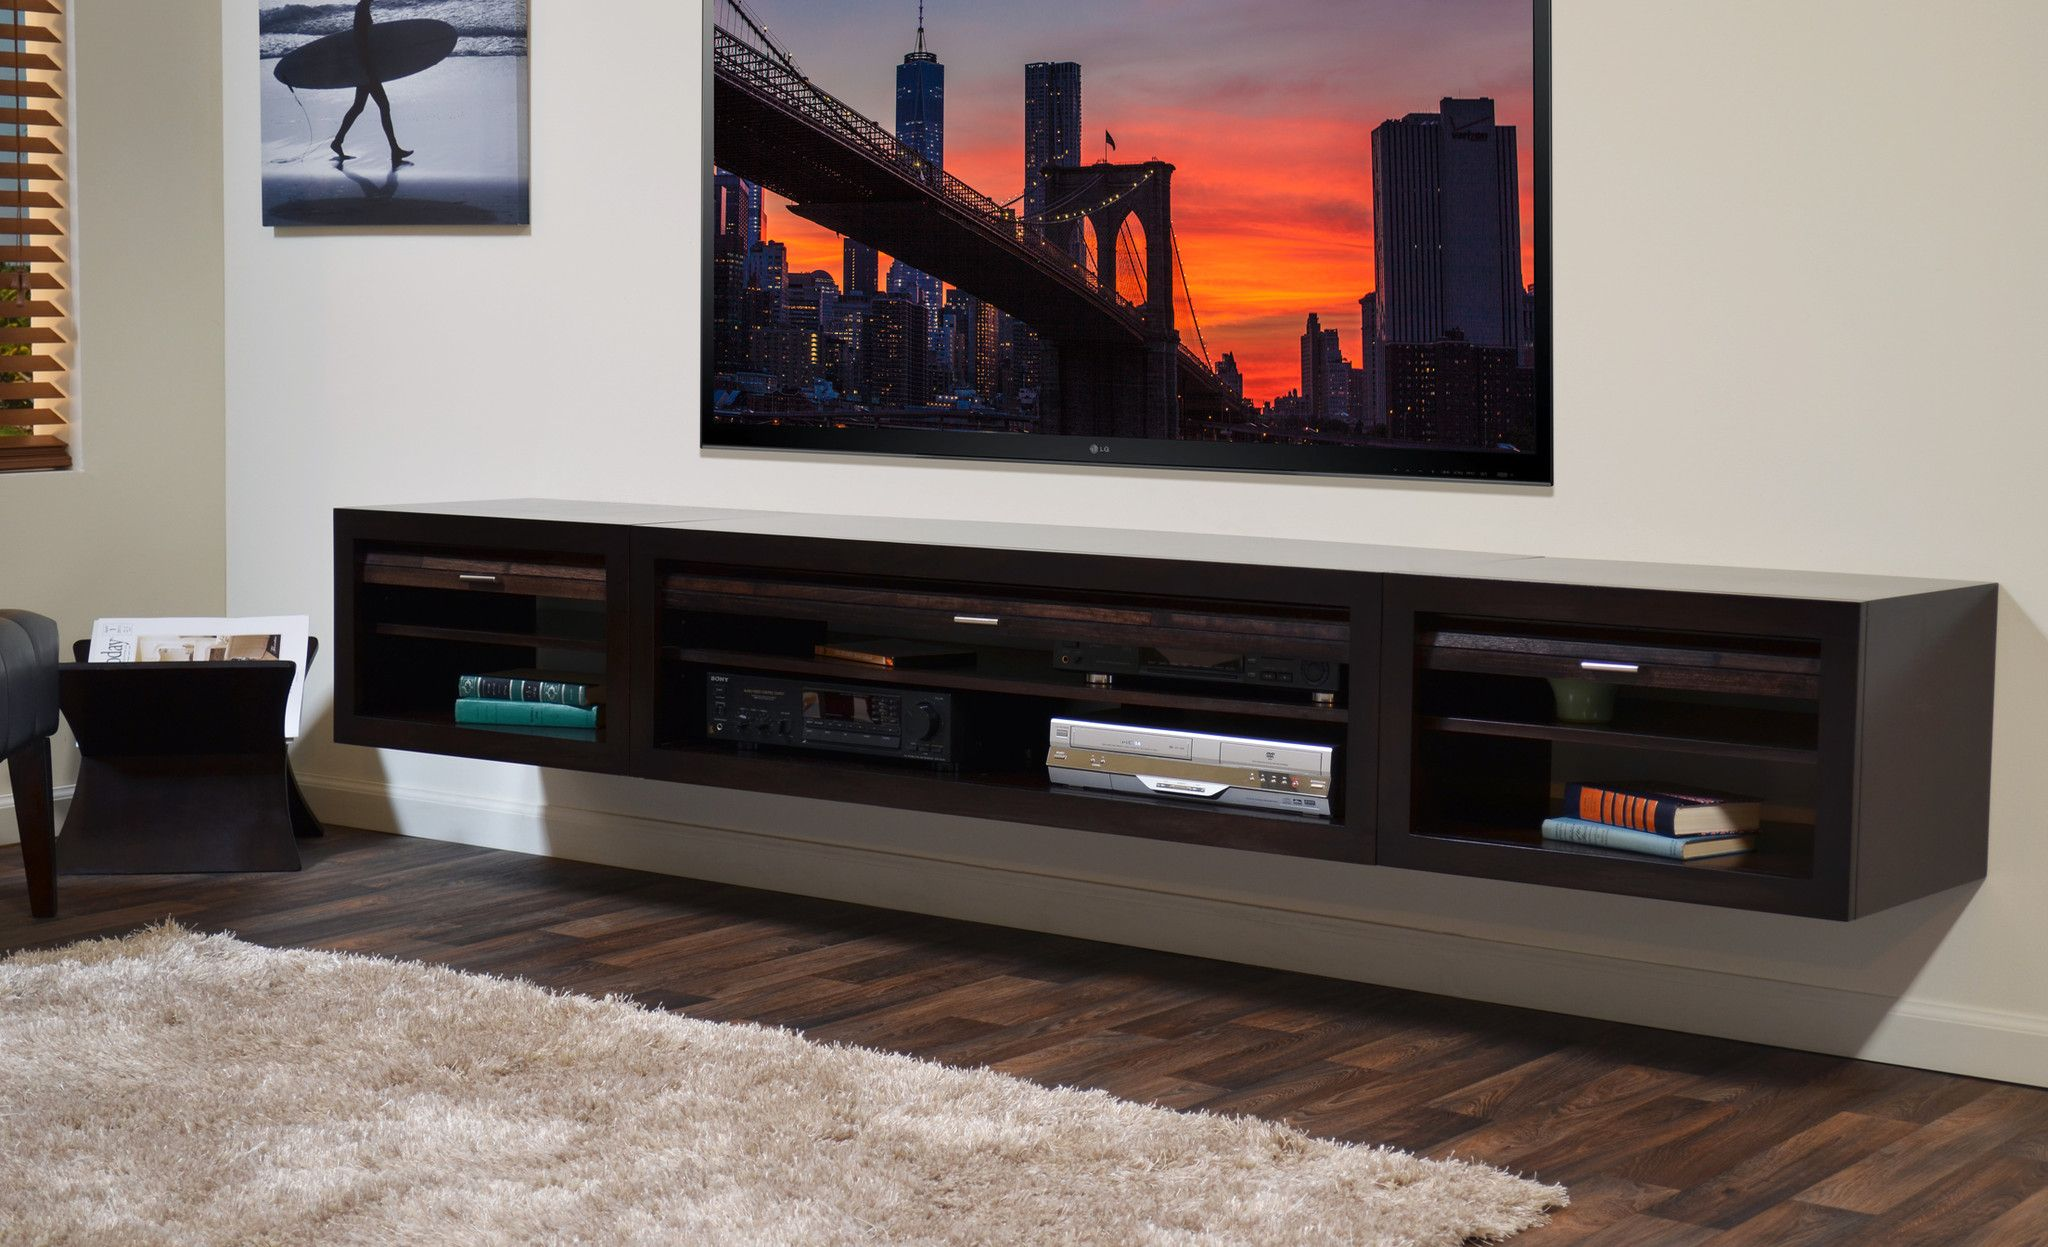 Wall Mounted Entertainment Unit Floating Entertainment Center  Google Search  Ideas For The